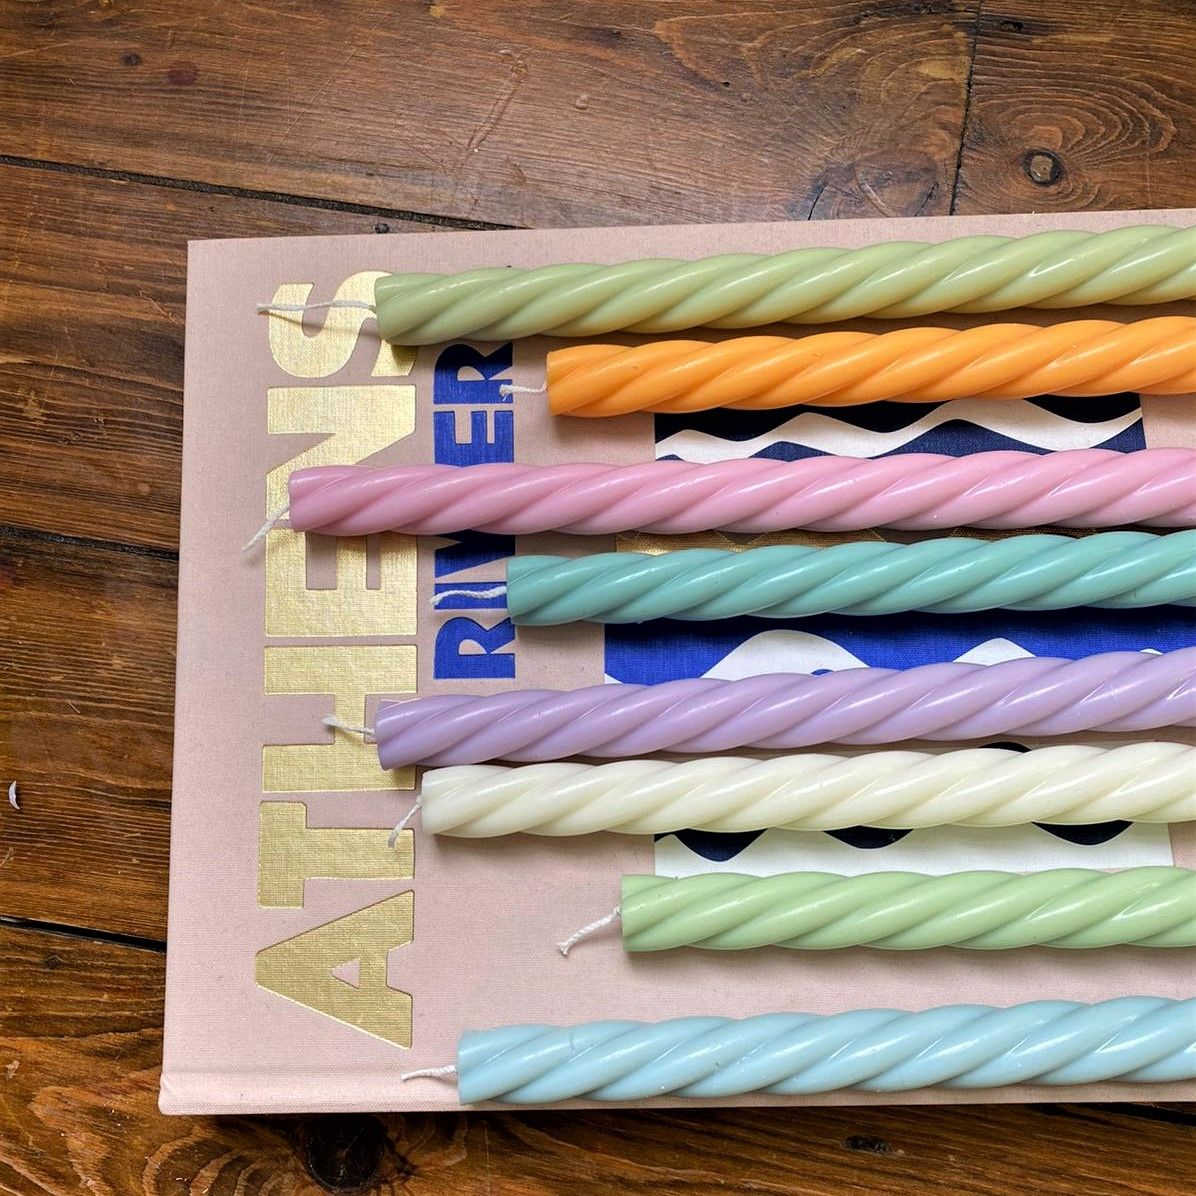 Tokyo Spiral Taper Candles - 2 Taper Candles in one pack